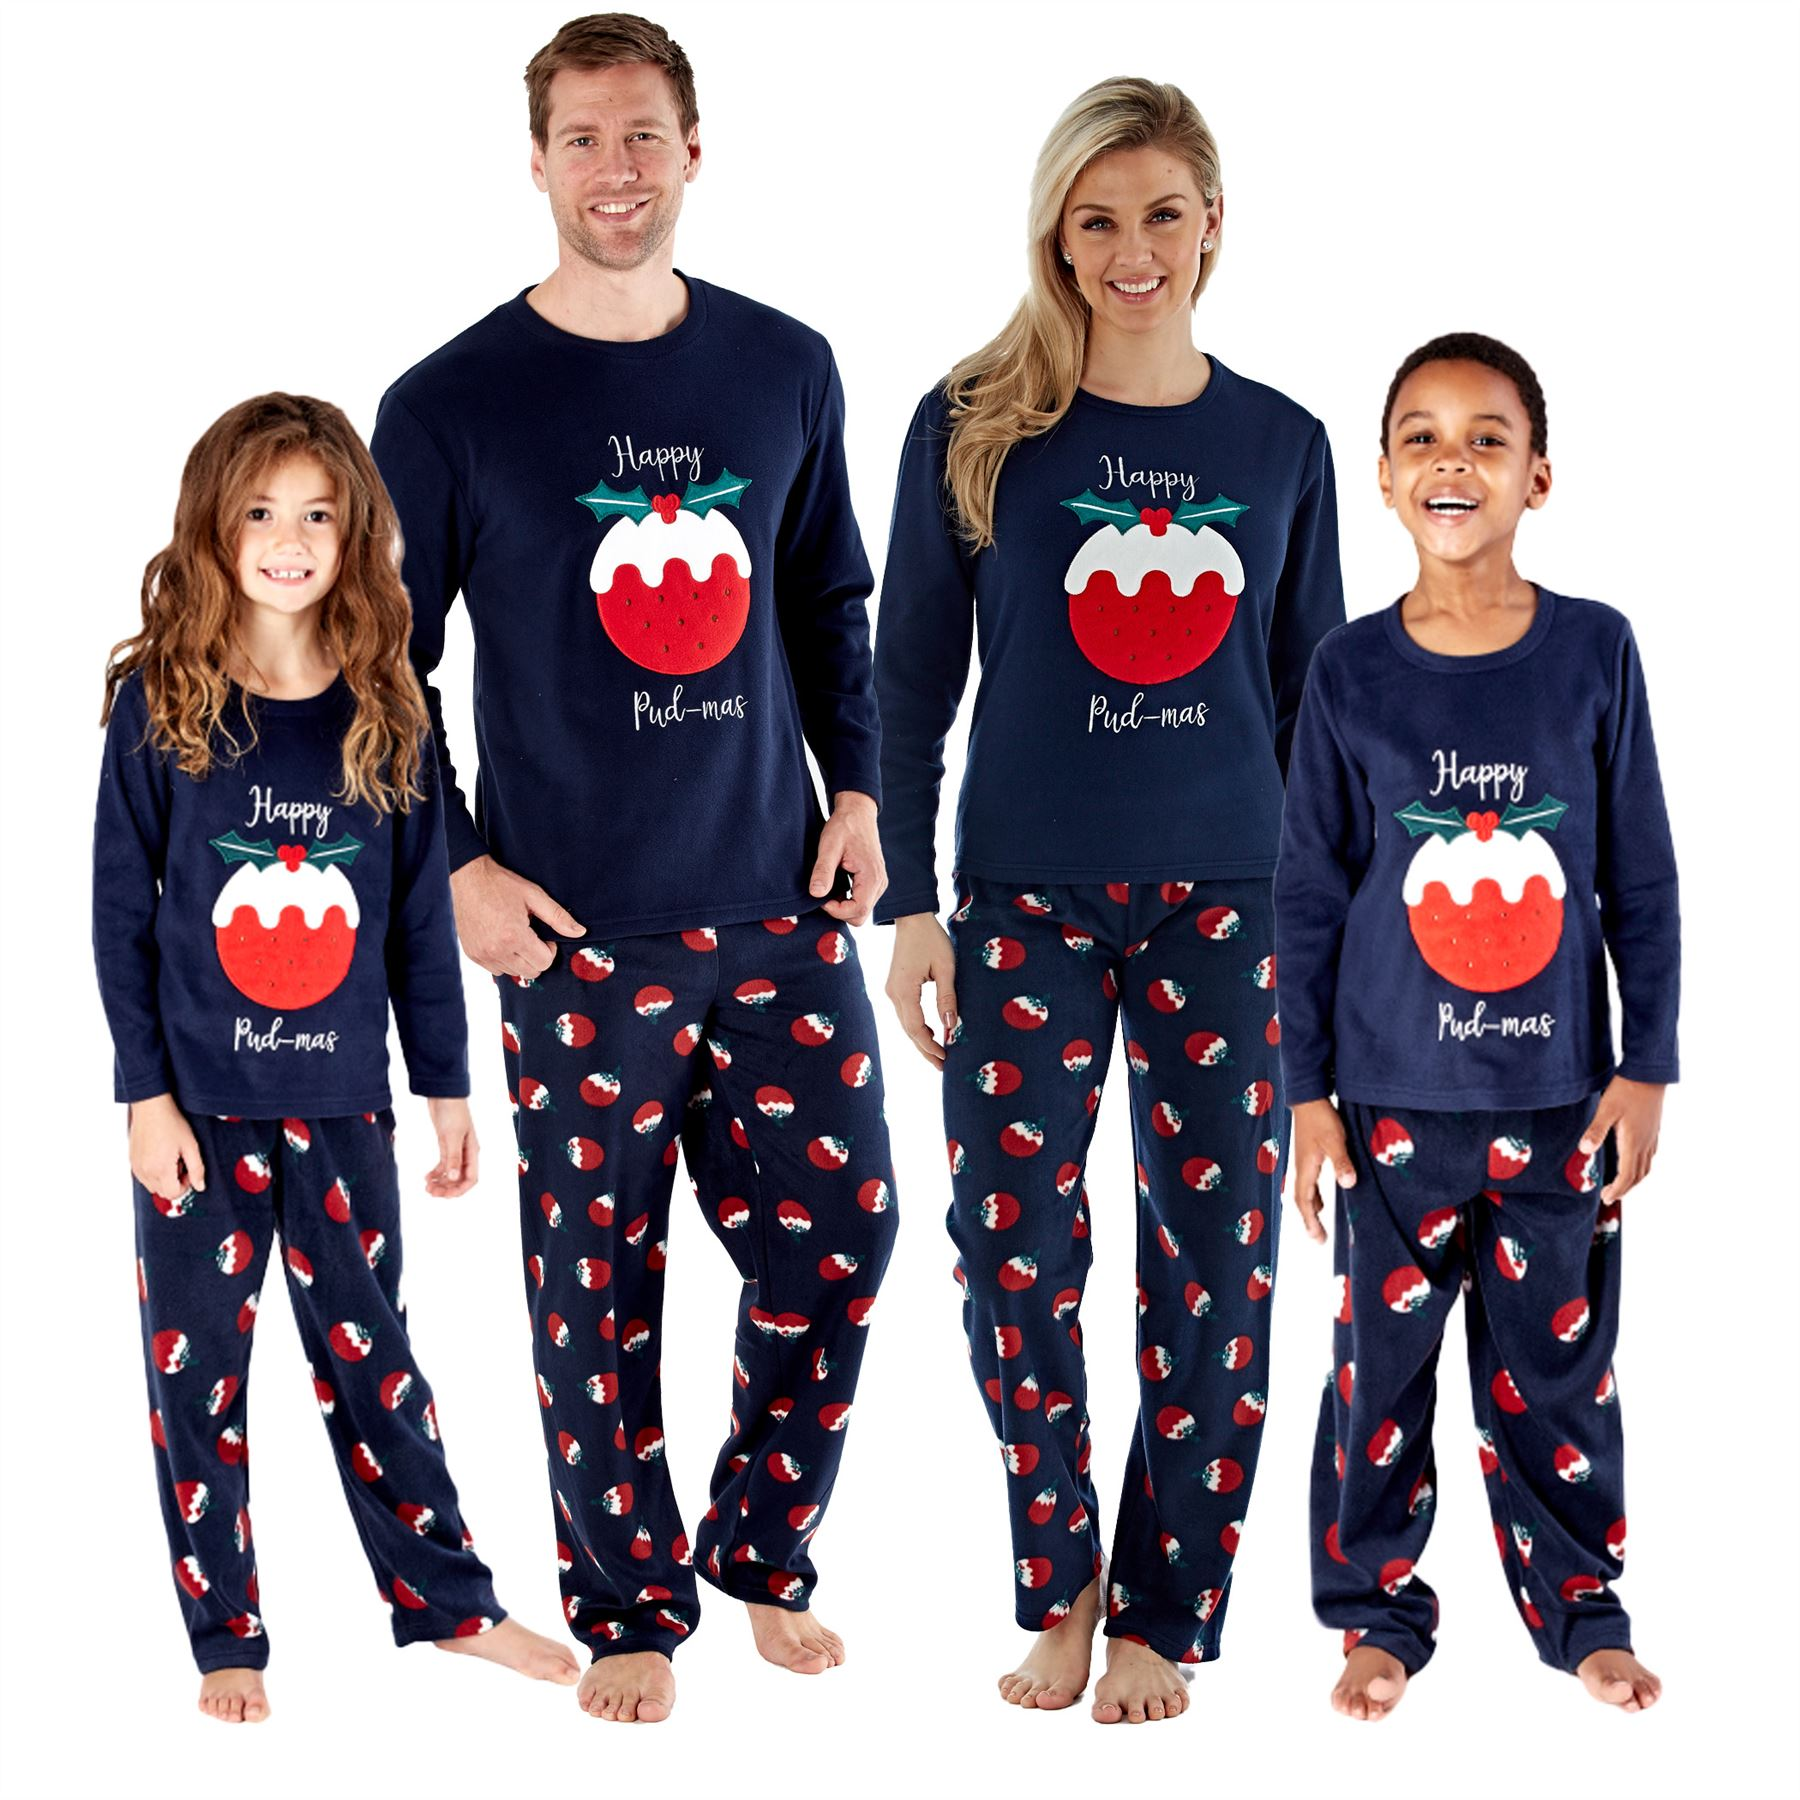 Family Mens Womens Kids Matching Fleece Christmas Pudding Xmas Pyjamas Pjs Ebay